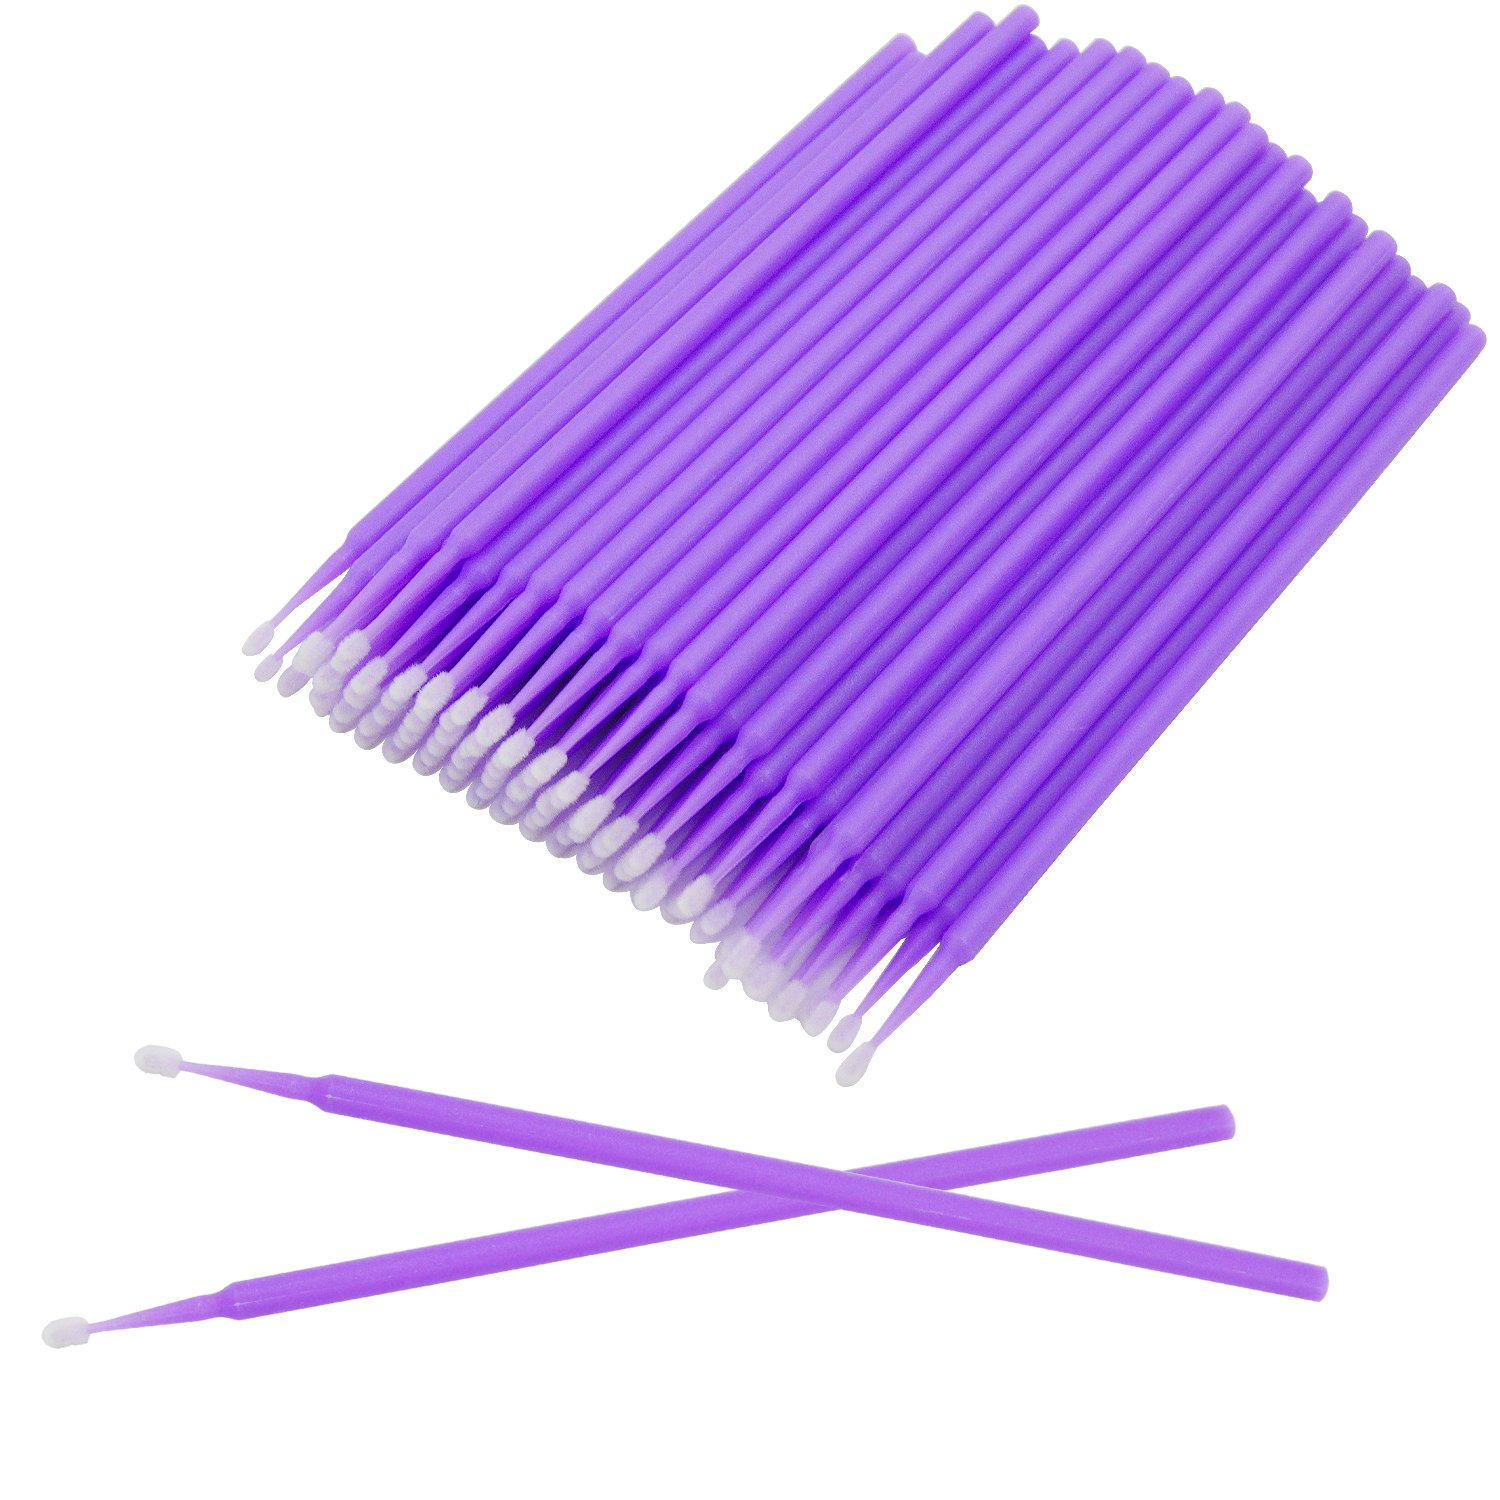 500 Pack Disposable Micro Applicators Brush Bendable Mascara Wands Micro Fiber Lint Brush for Makeup Eyelash Extensions and Personal Care, Head Diameter: 1.5mm Granmp